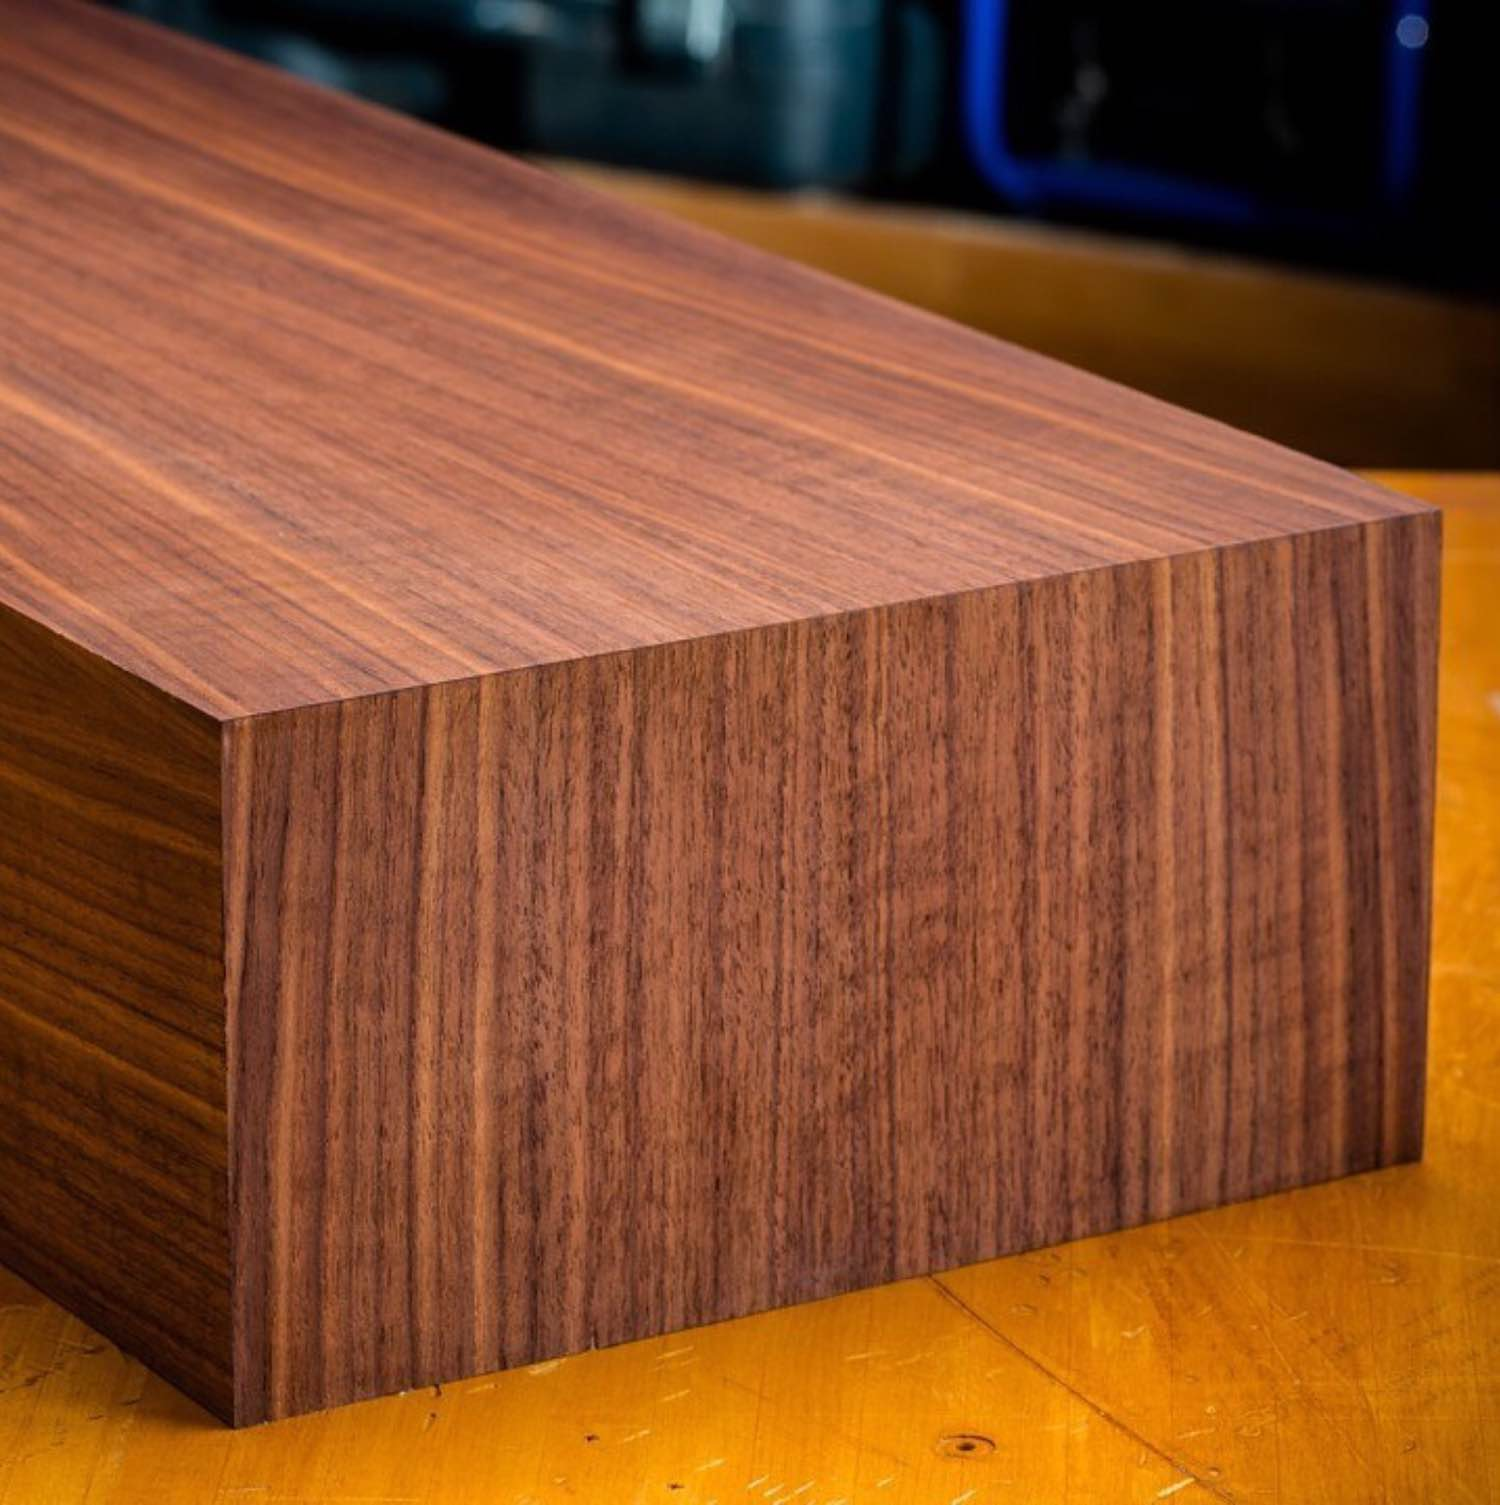 Look how beautifully the wood grain flows through that corner.